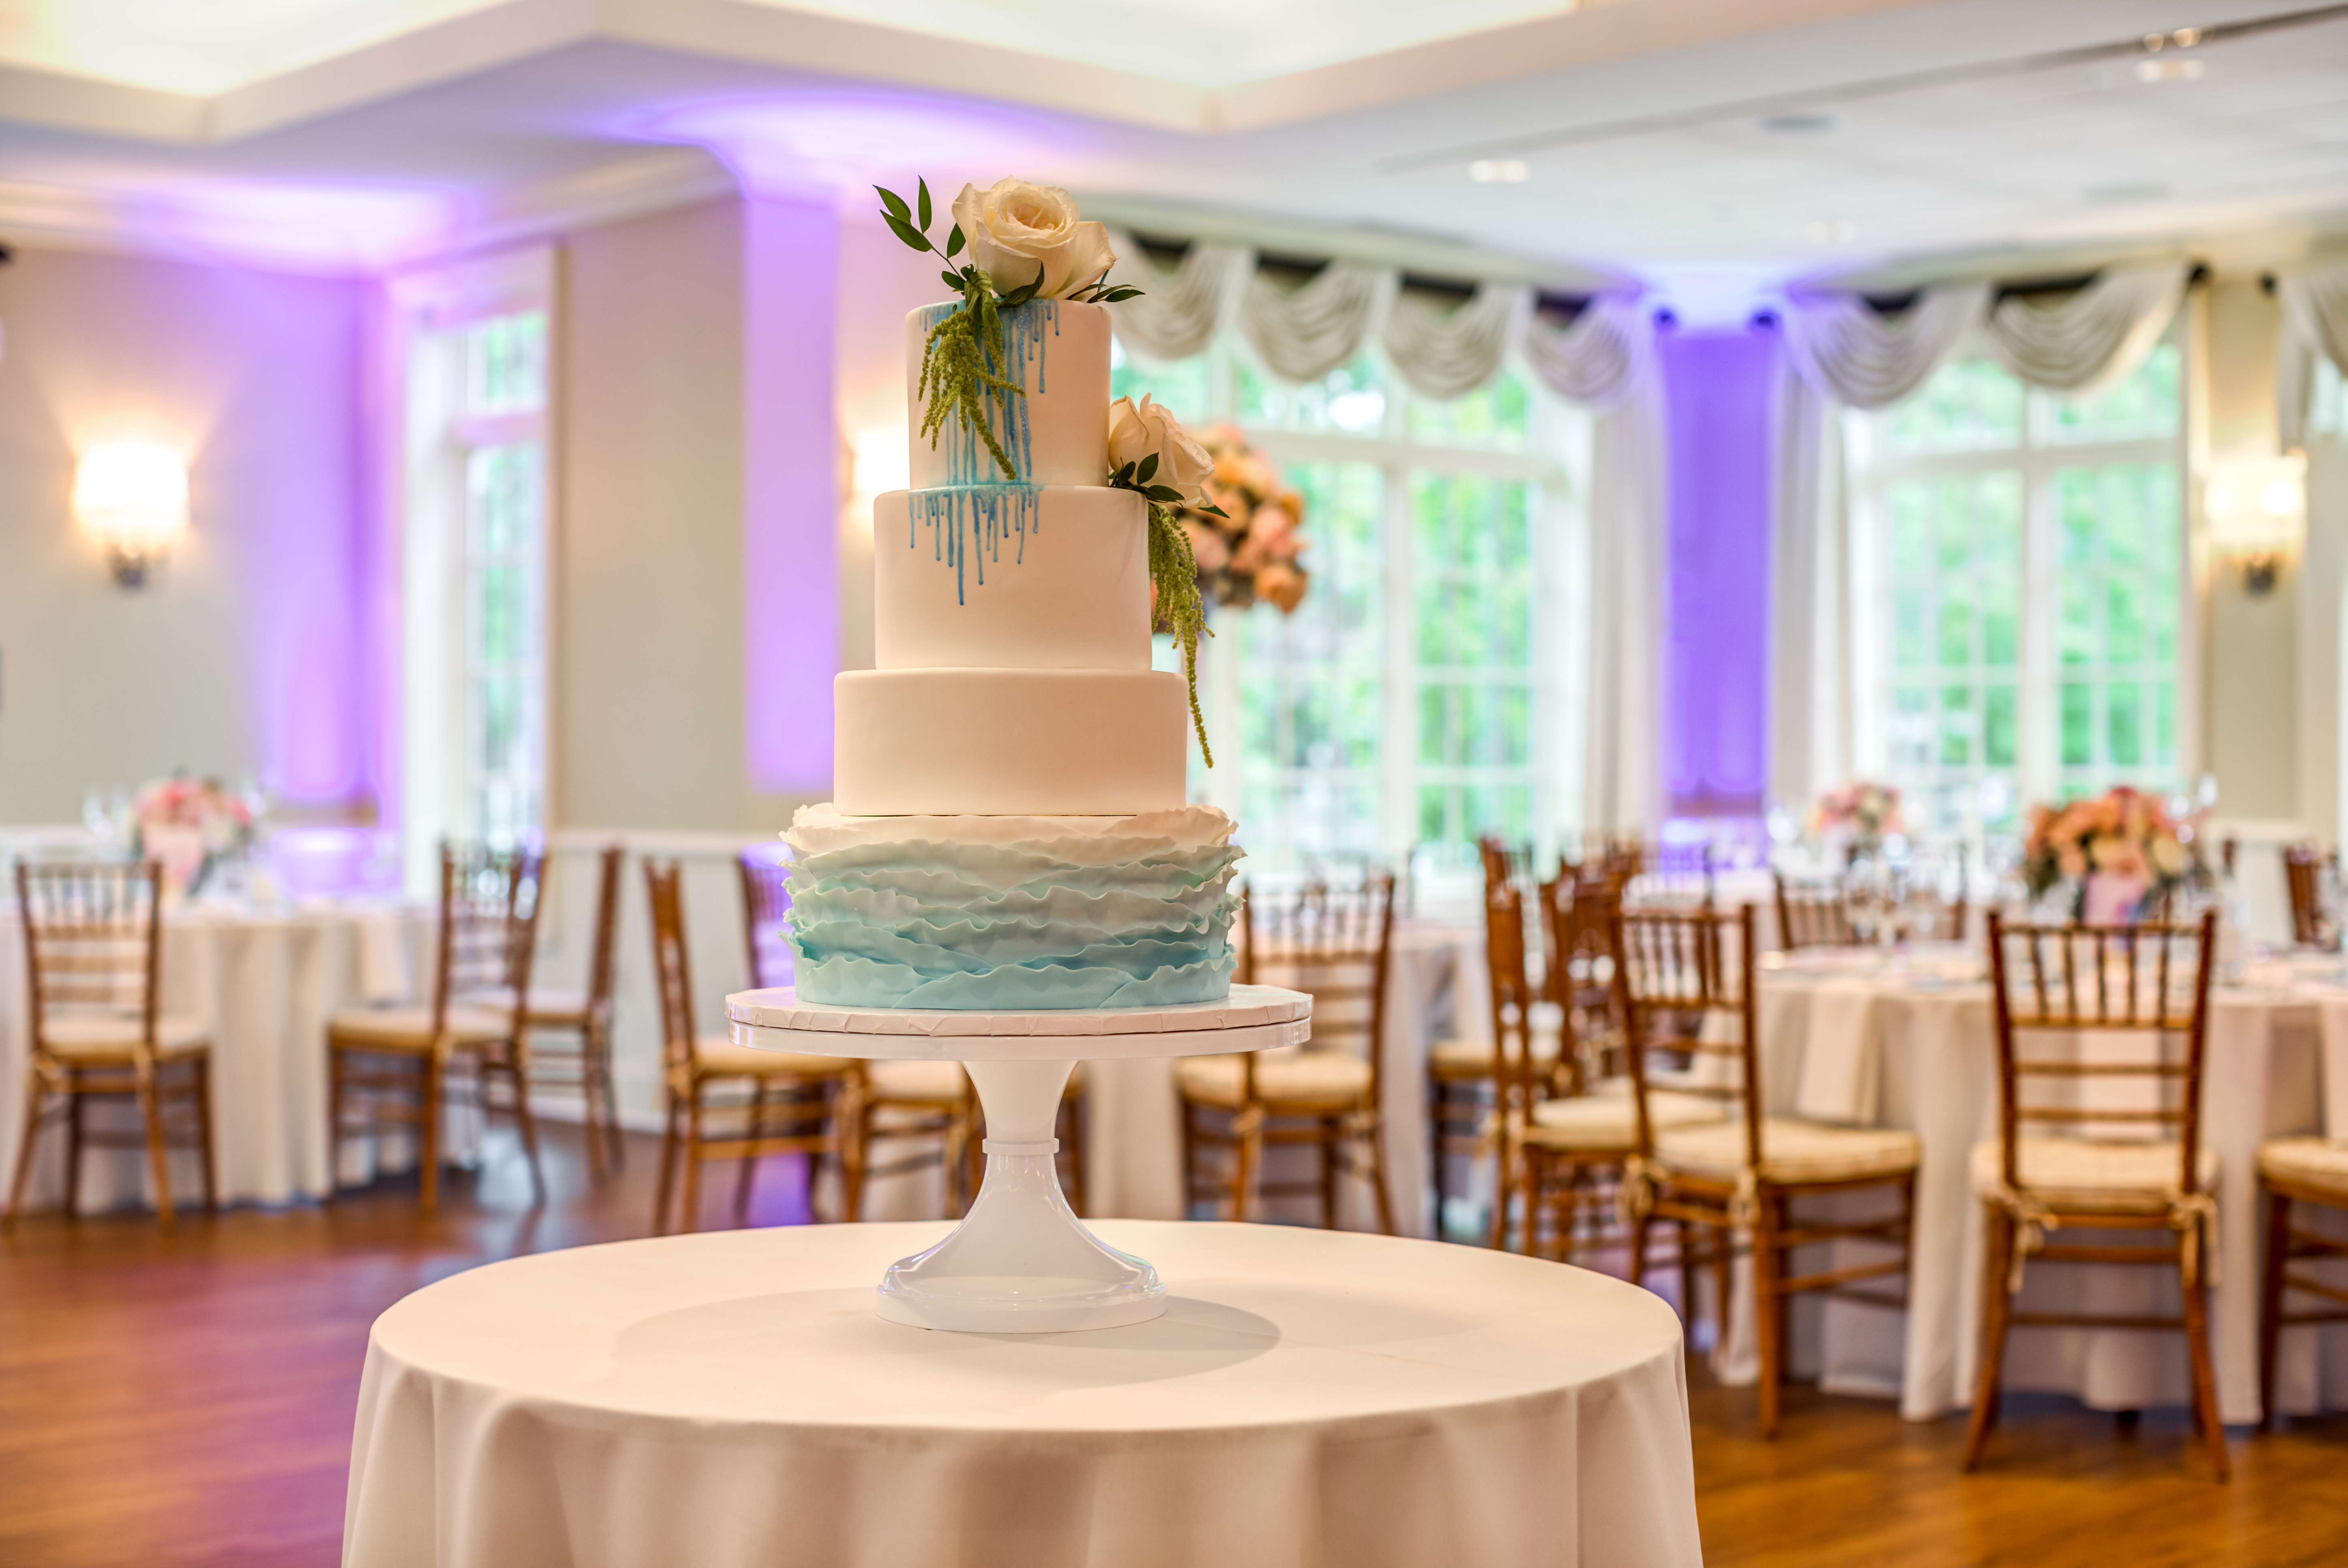 Romantic Weddings Venues in Cleveland Ohio | Glidden House